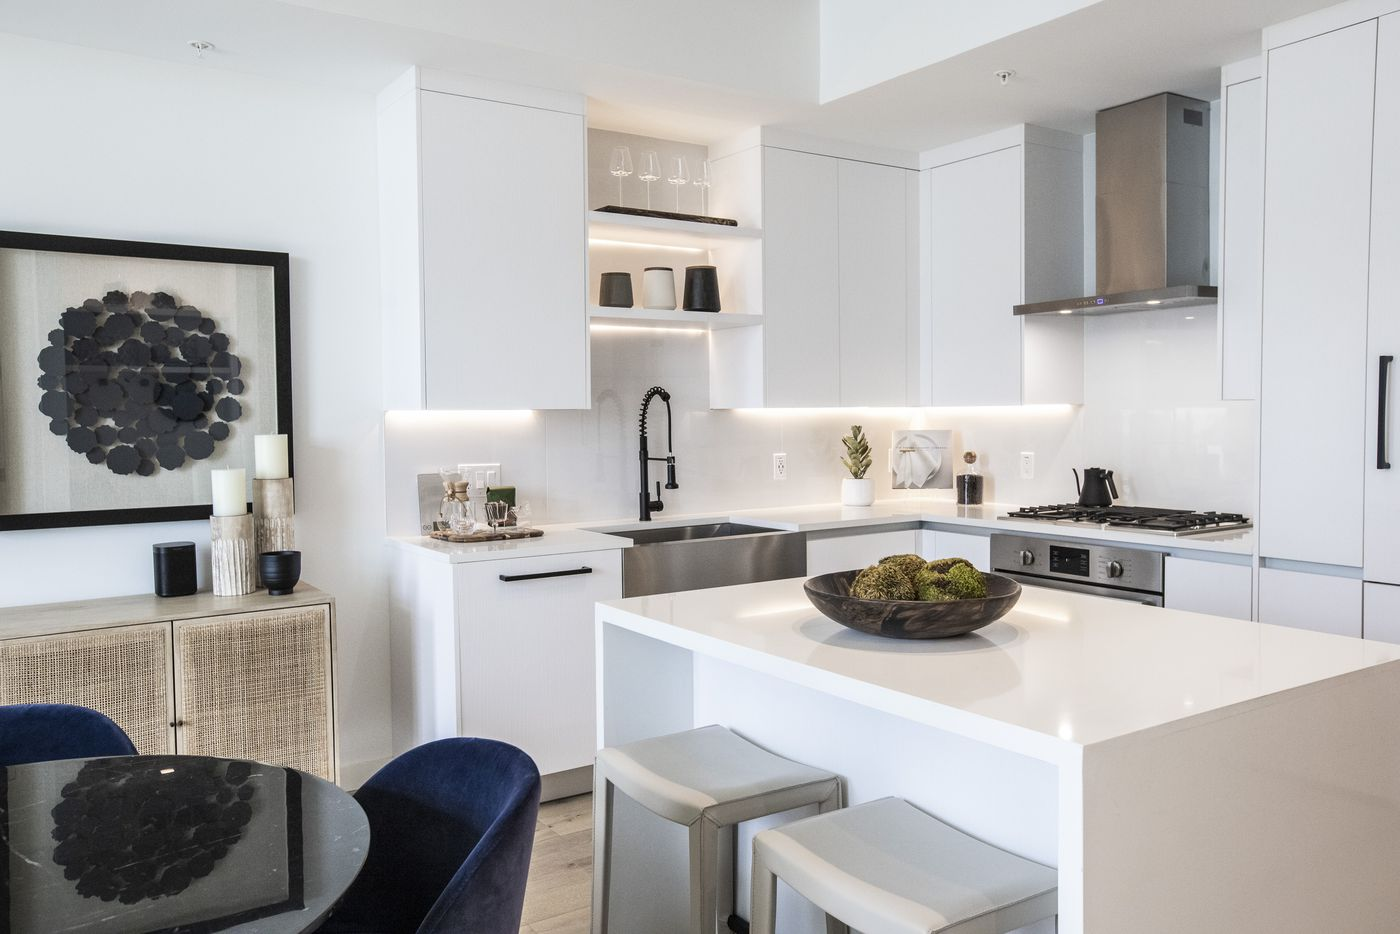 The kitchen and dining room area of a one-bedroom unit at the Atelier, a 41-story luxury residential building in the heart of the Dallas Arts District. (Lynda M. González/The Dallas Morning News)